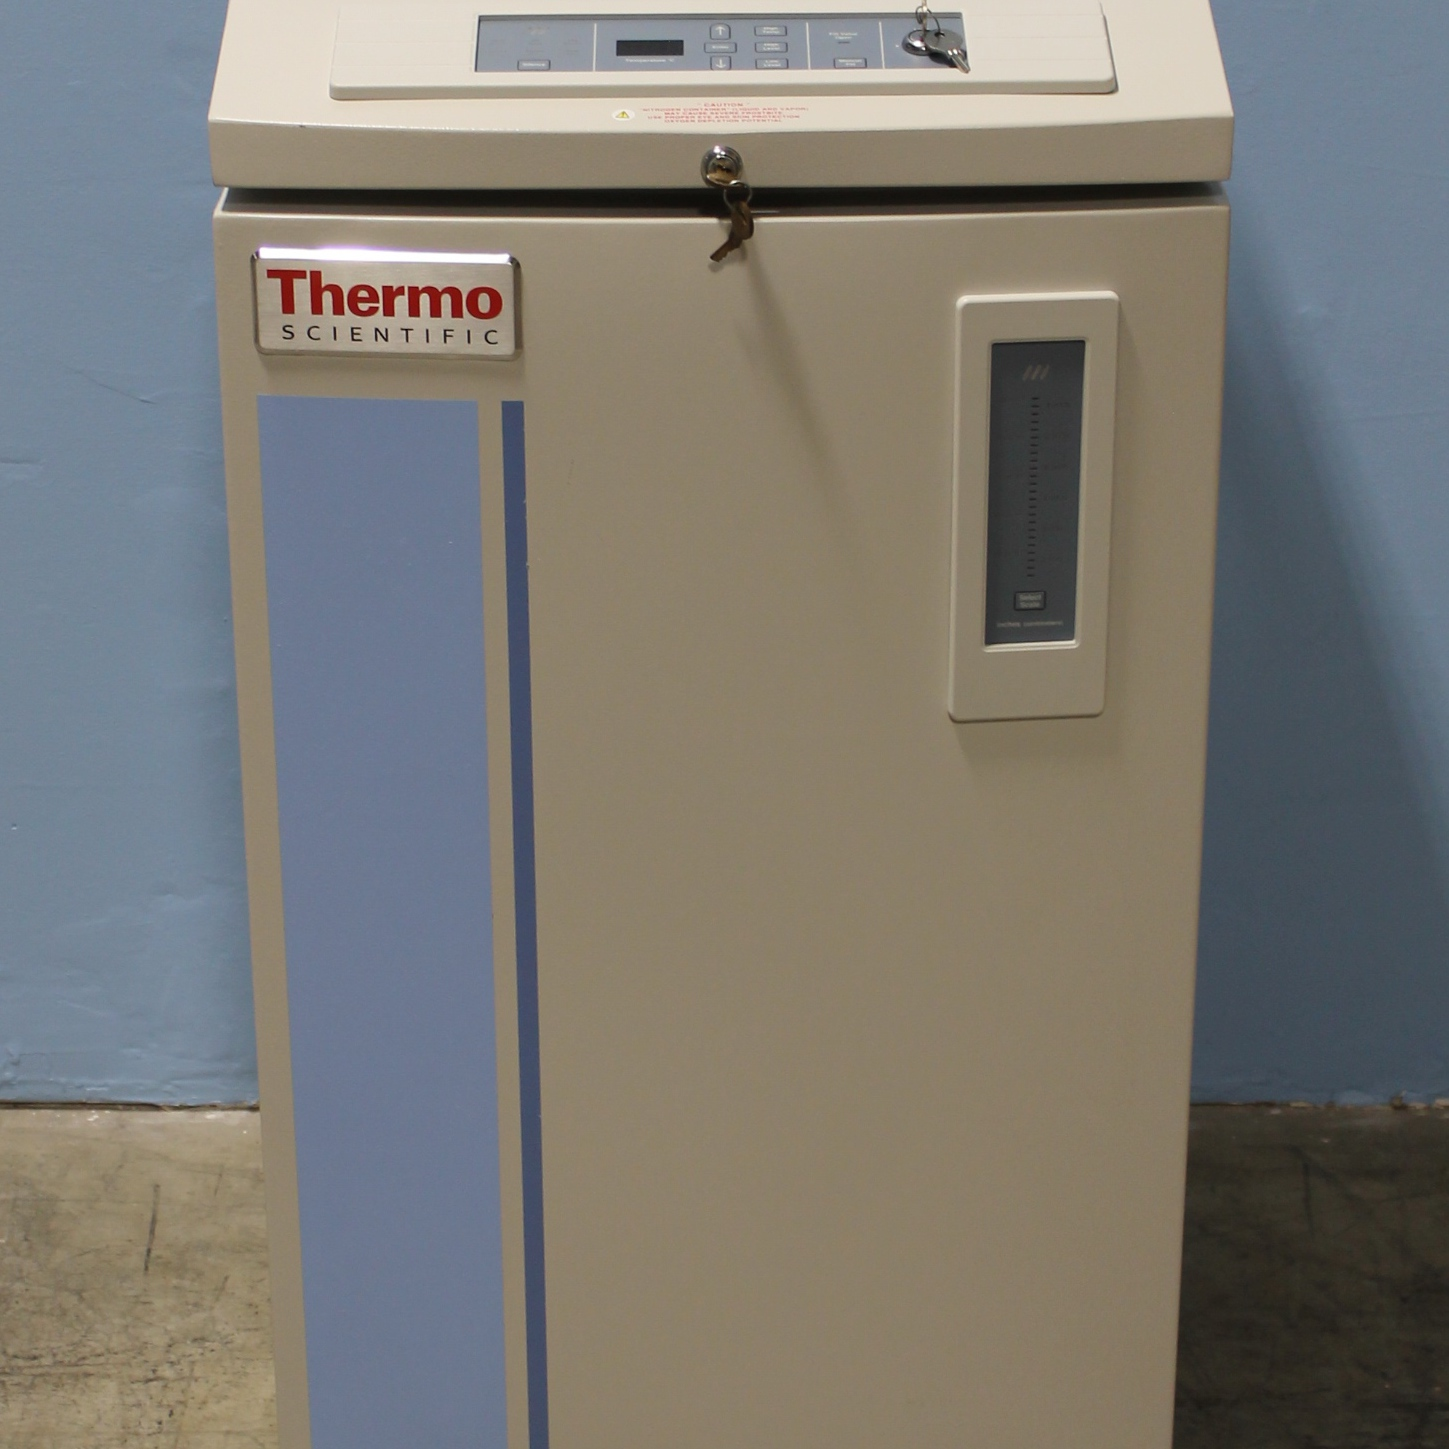 Thermo Scientific CryoPlus 1 Liquid Nitrogen Cryo Storage System Model 7400 Image